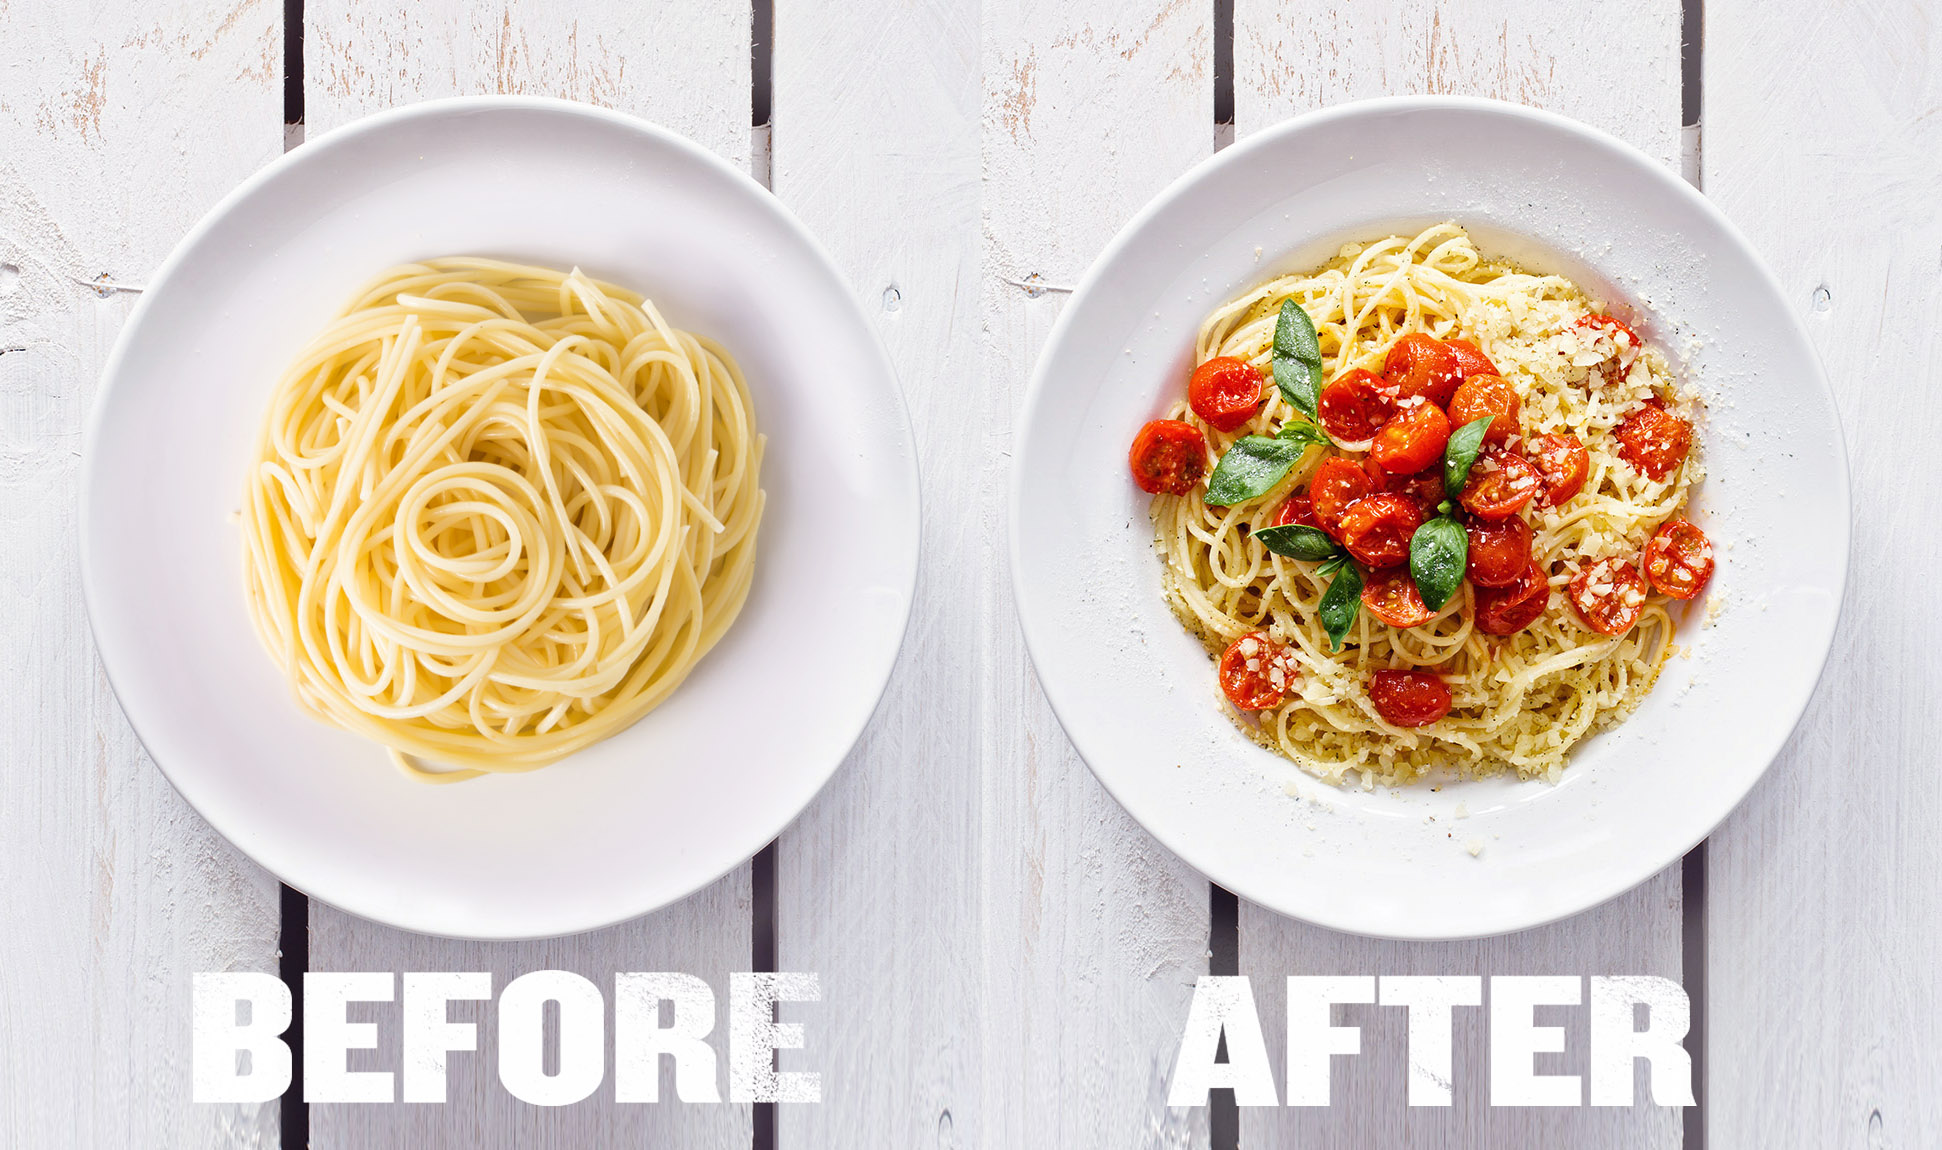 BeforeAfterpasta_132851954